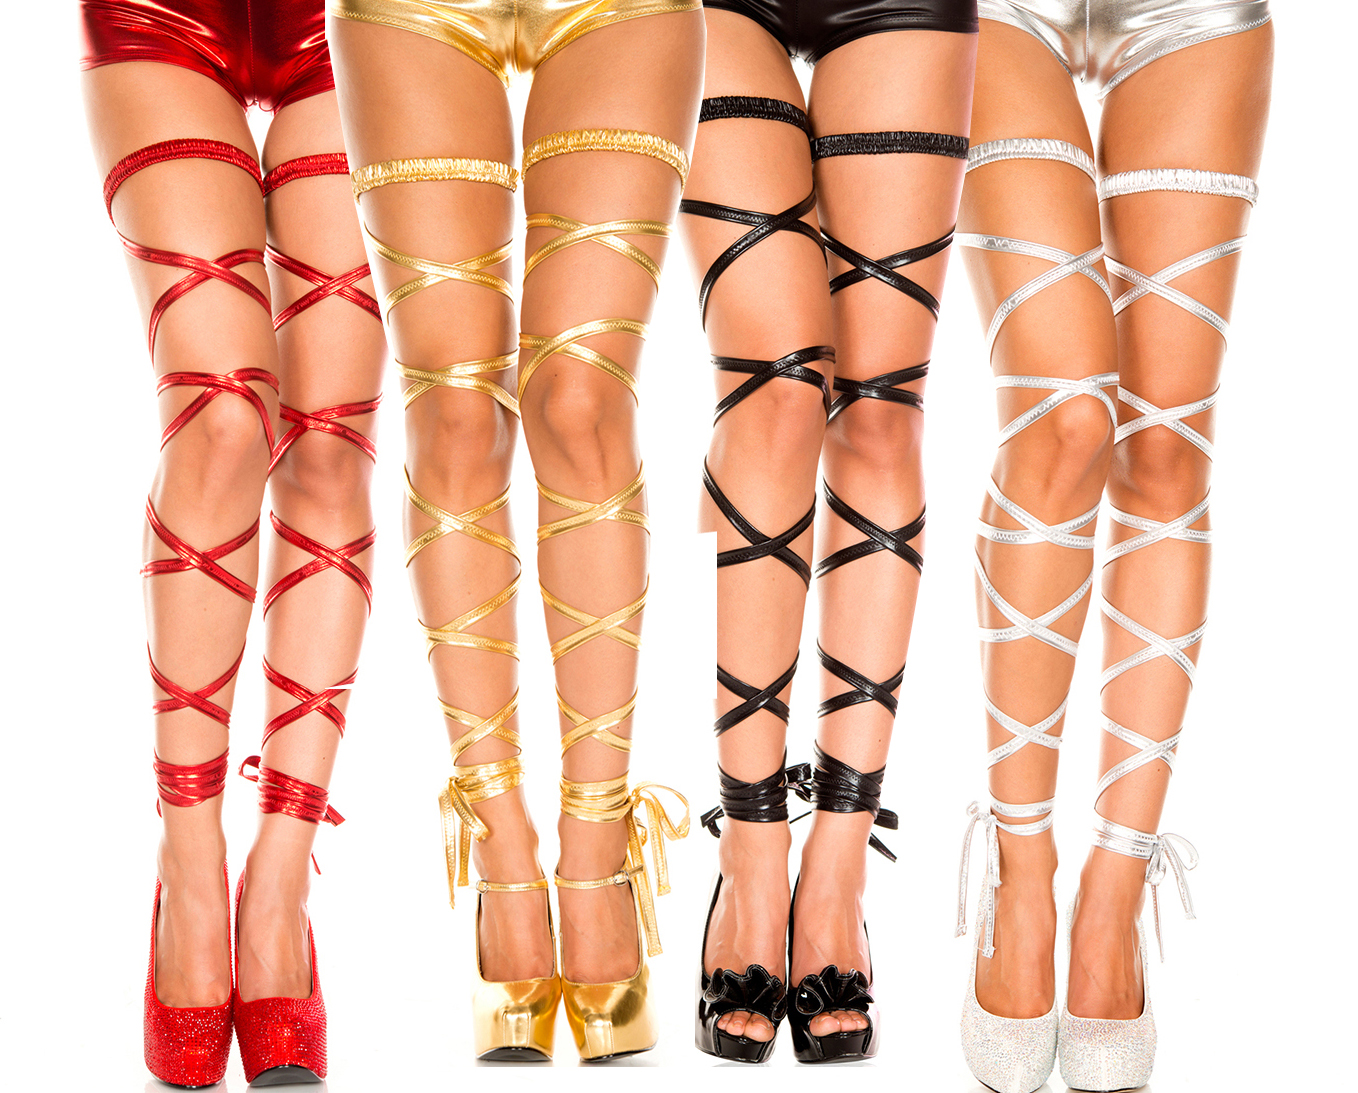 Buy sexy Metallic PVC Faux Leather glisten lingerie Stockings tights PANTY pole dancing nightclub Party  6290